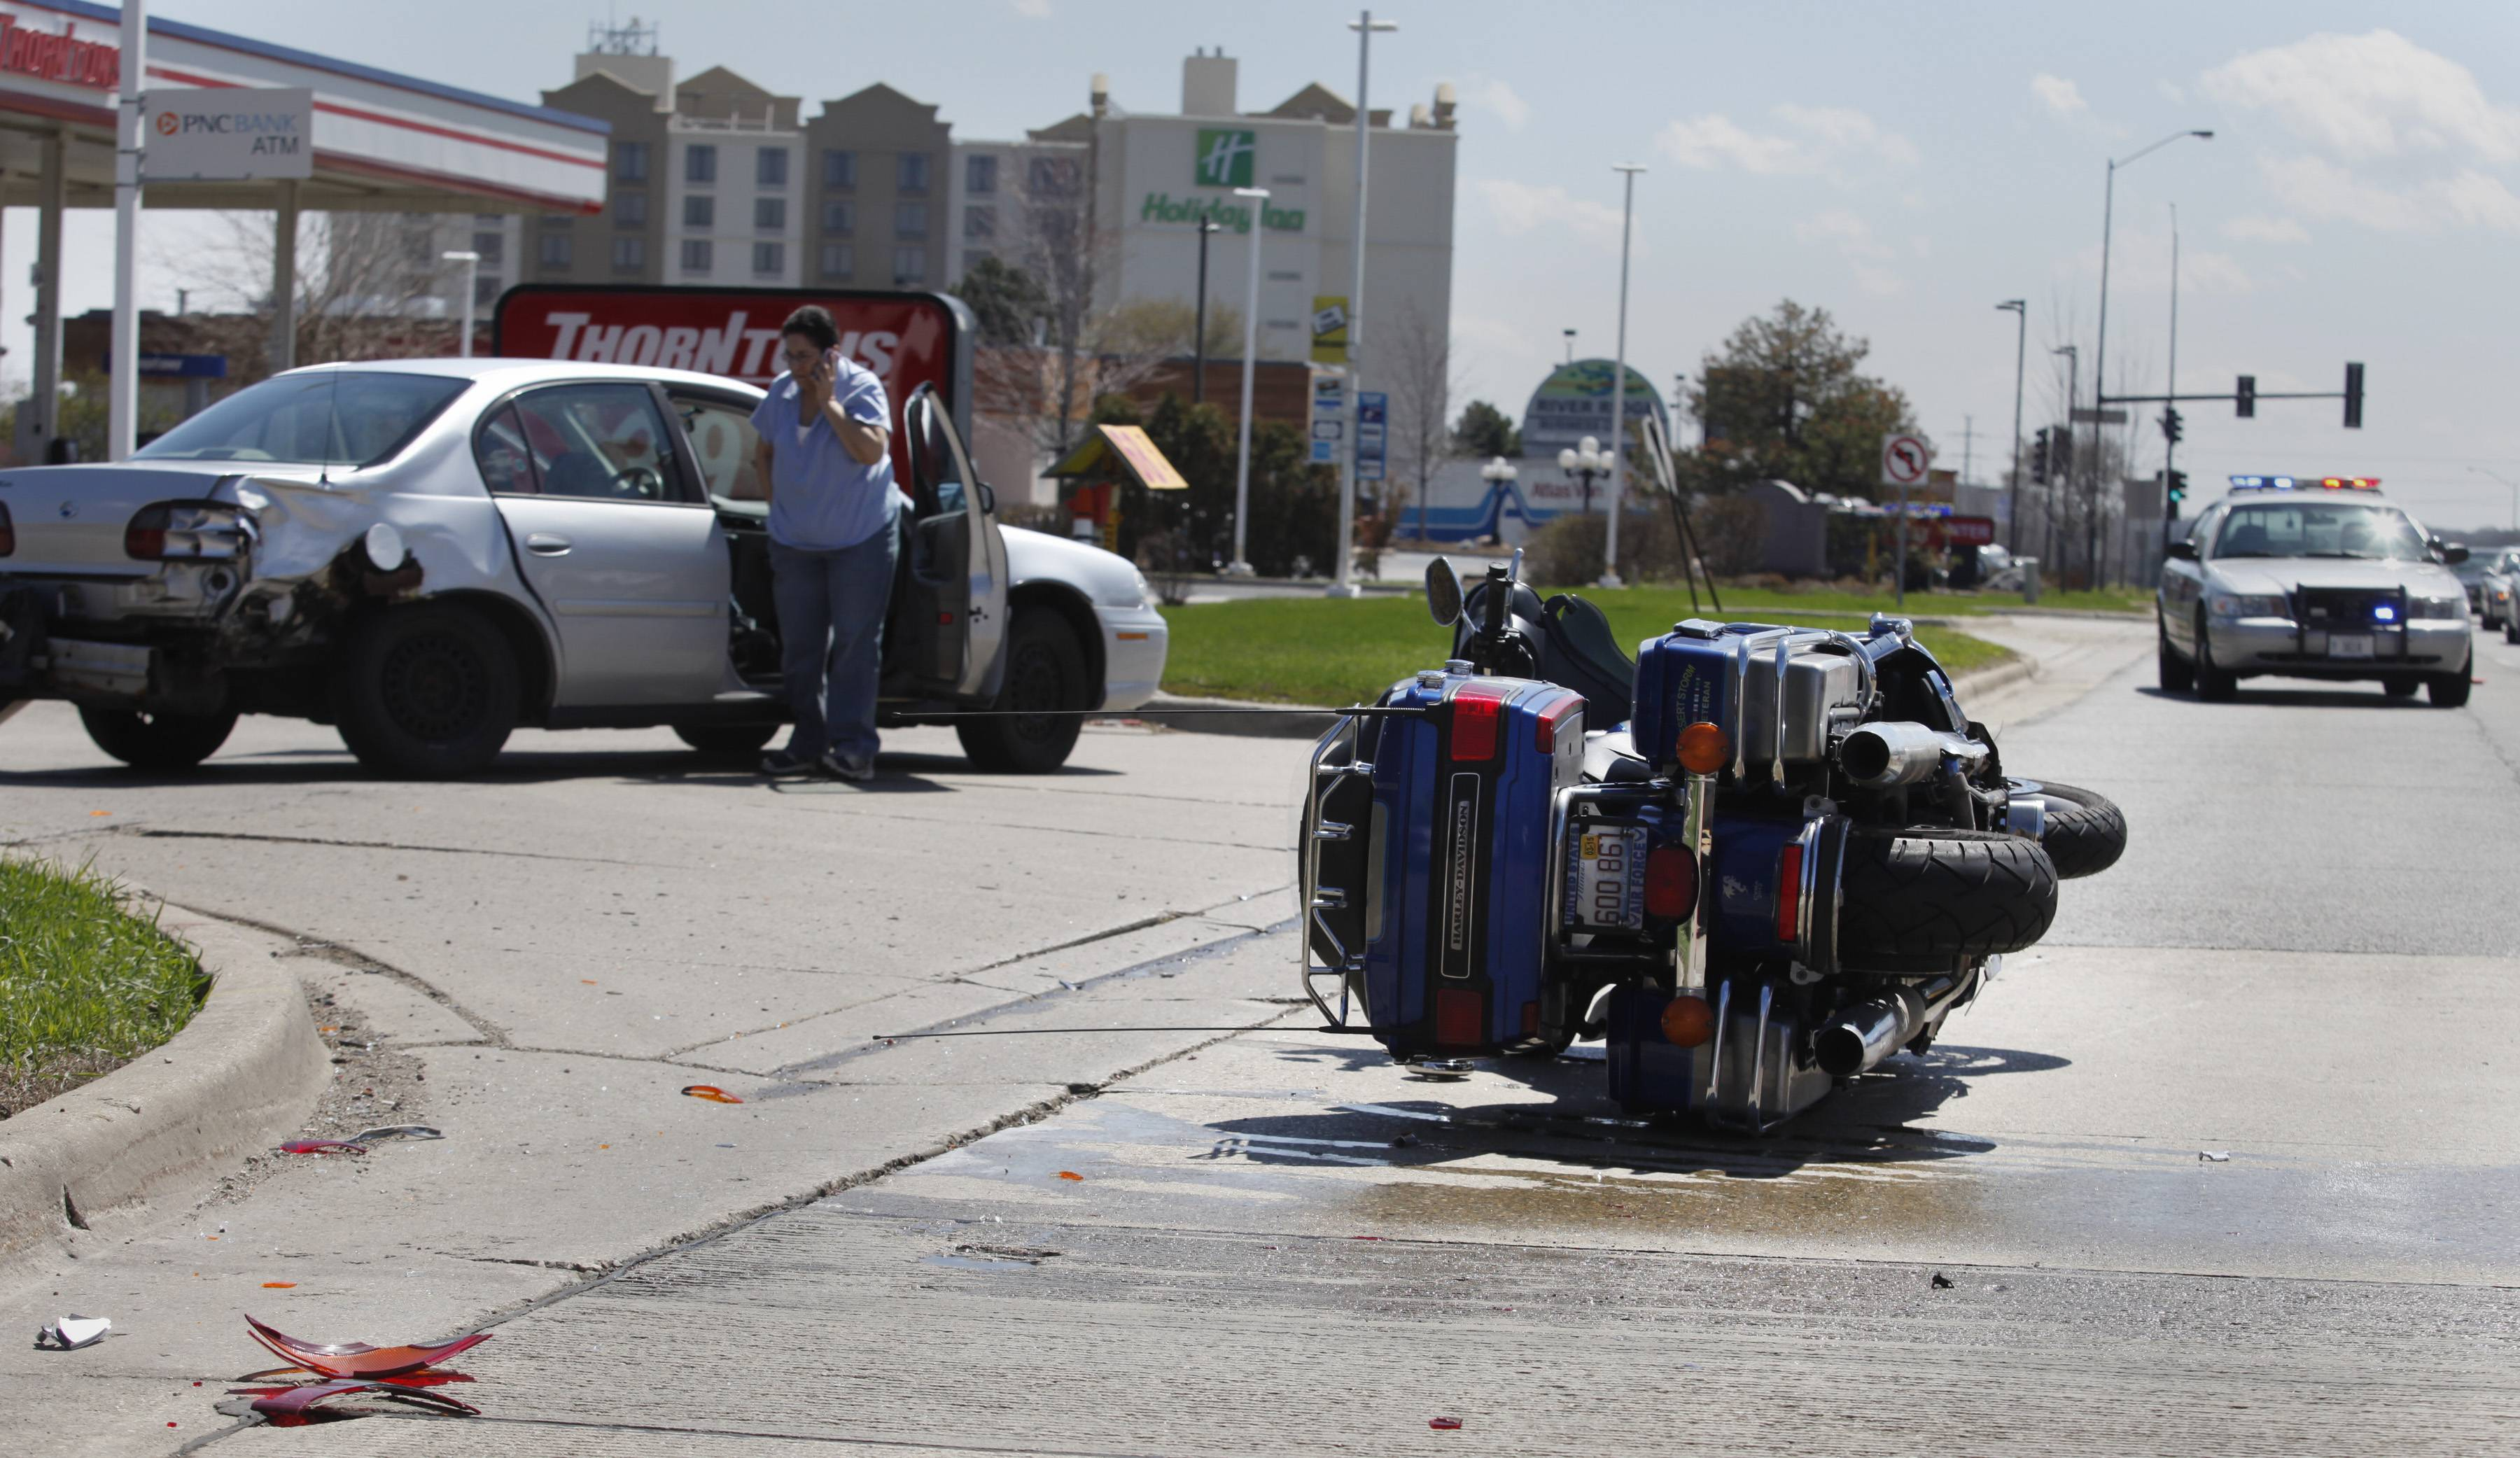 A 53-year-old Elgin man was injured Friday afternoon in West Dundee after a southbound car turning left from Route 31 onto Marriott Drive hit the man's motorcycle, police said. The car's driver was cited. The man was taken to Advocate Sherman Hospital in Elgin.